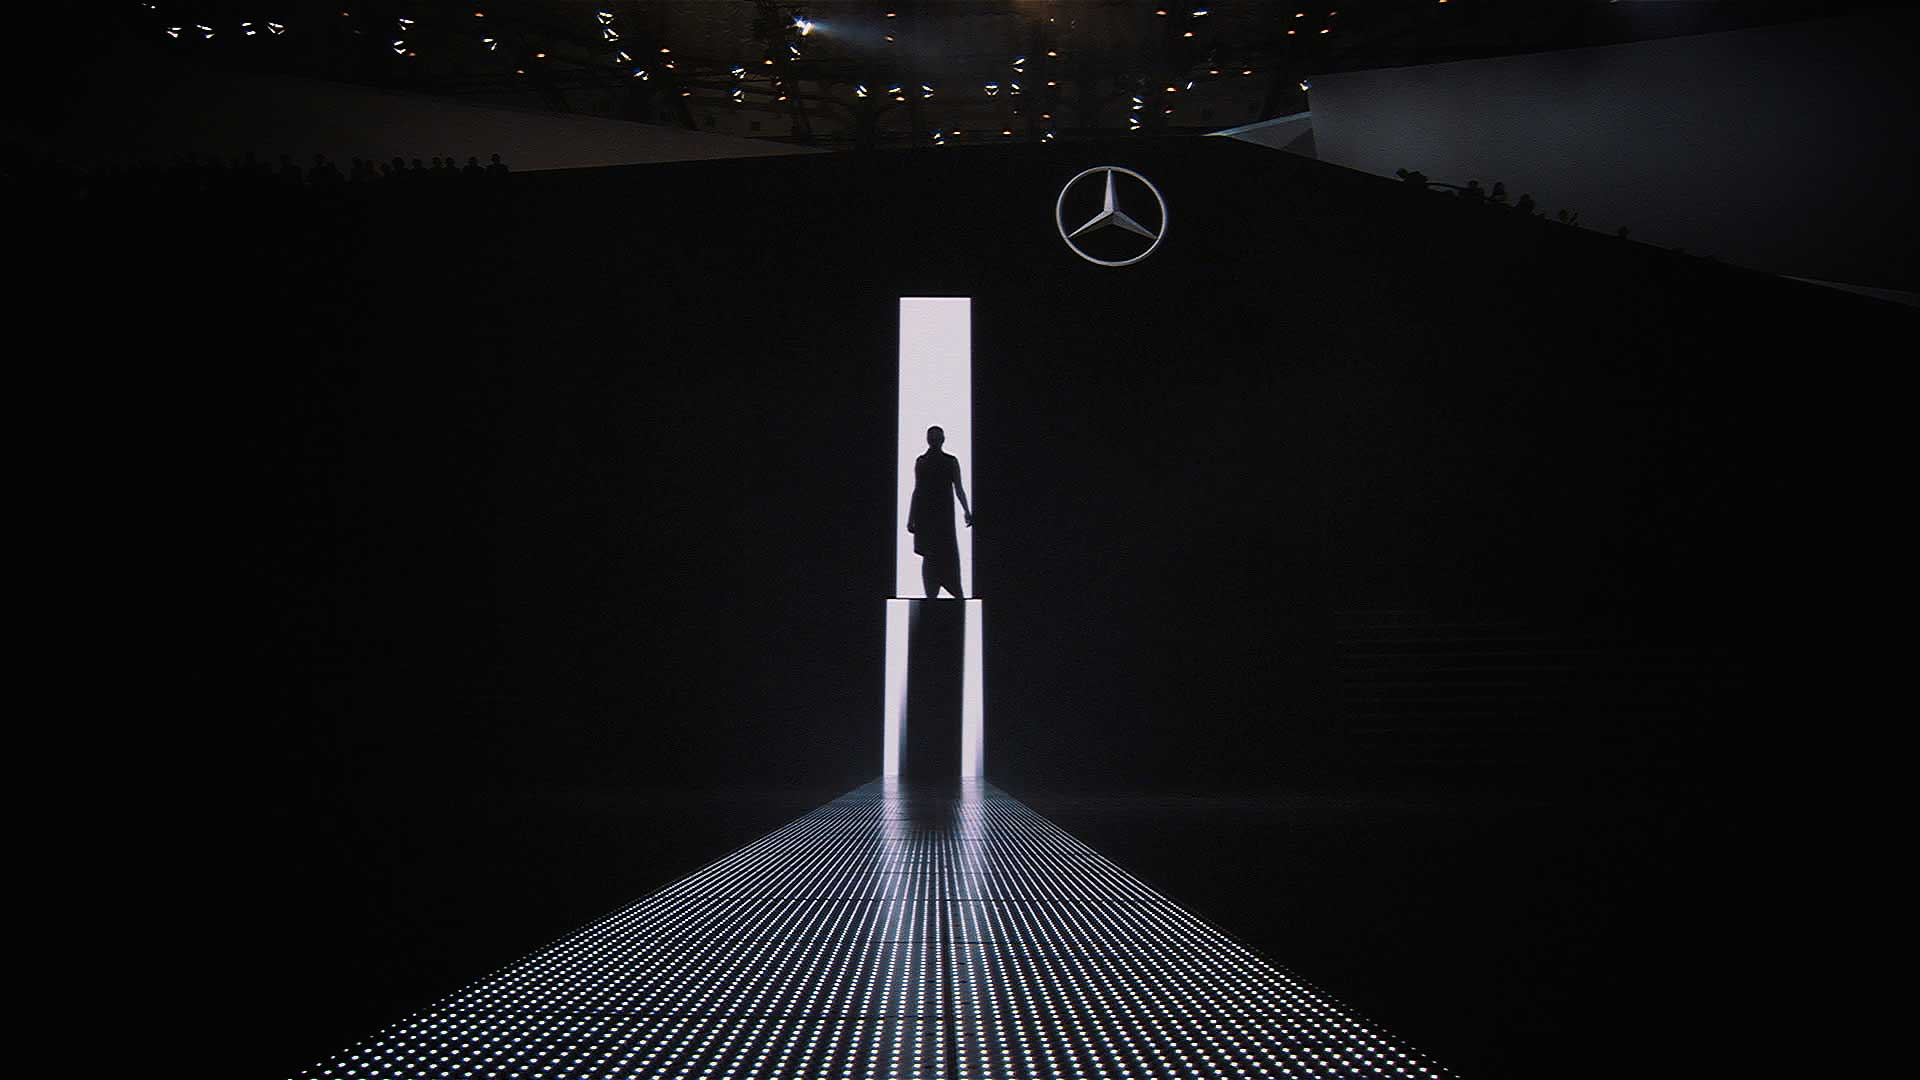 Man on stage. Mercedes-Benz IAA 2013 Trade Show